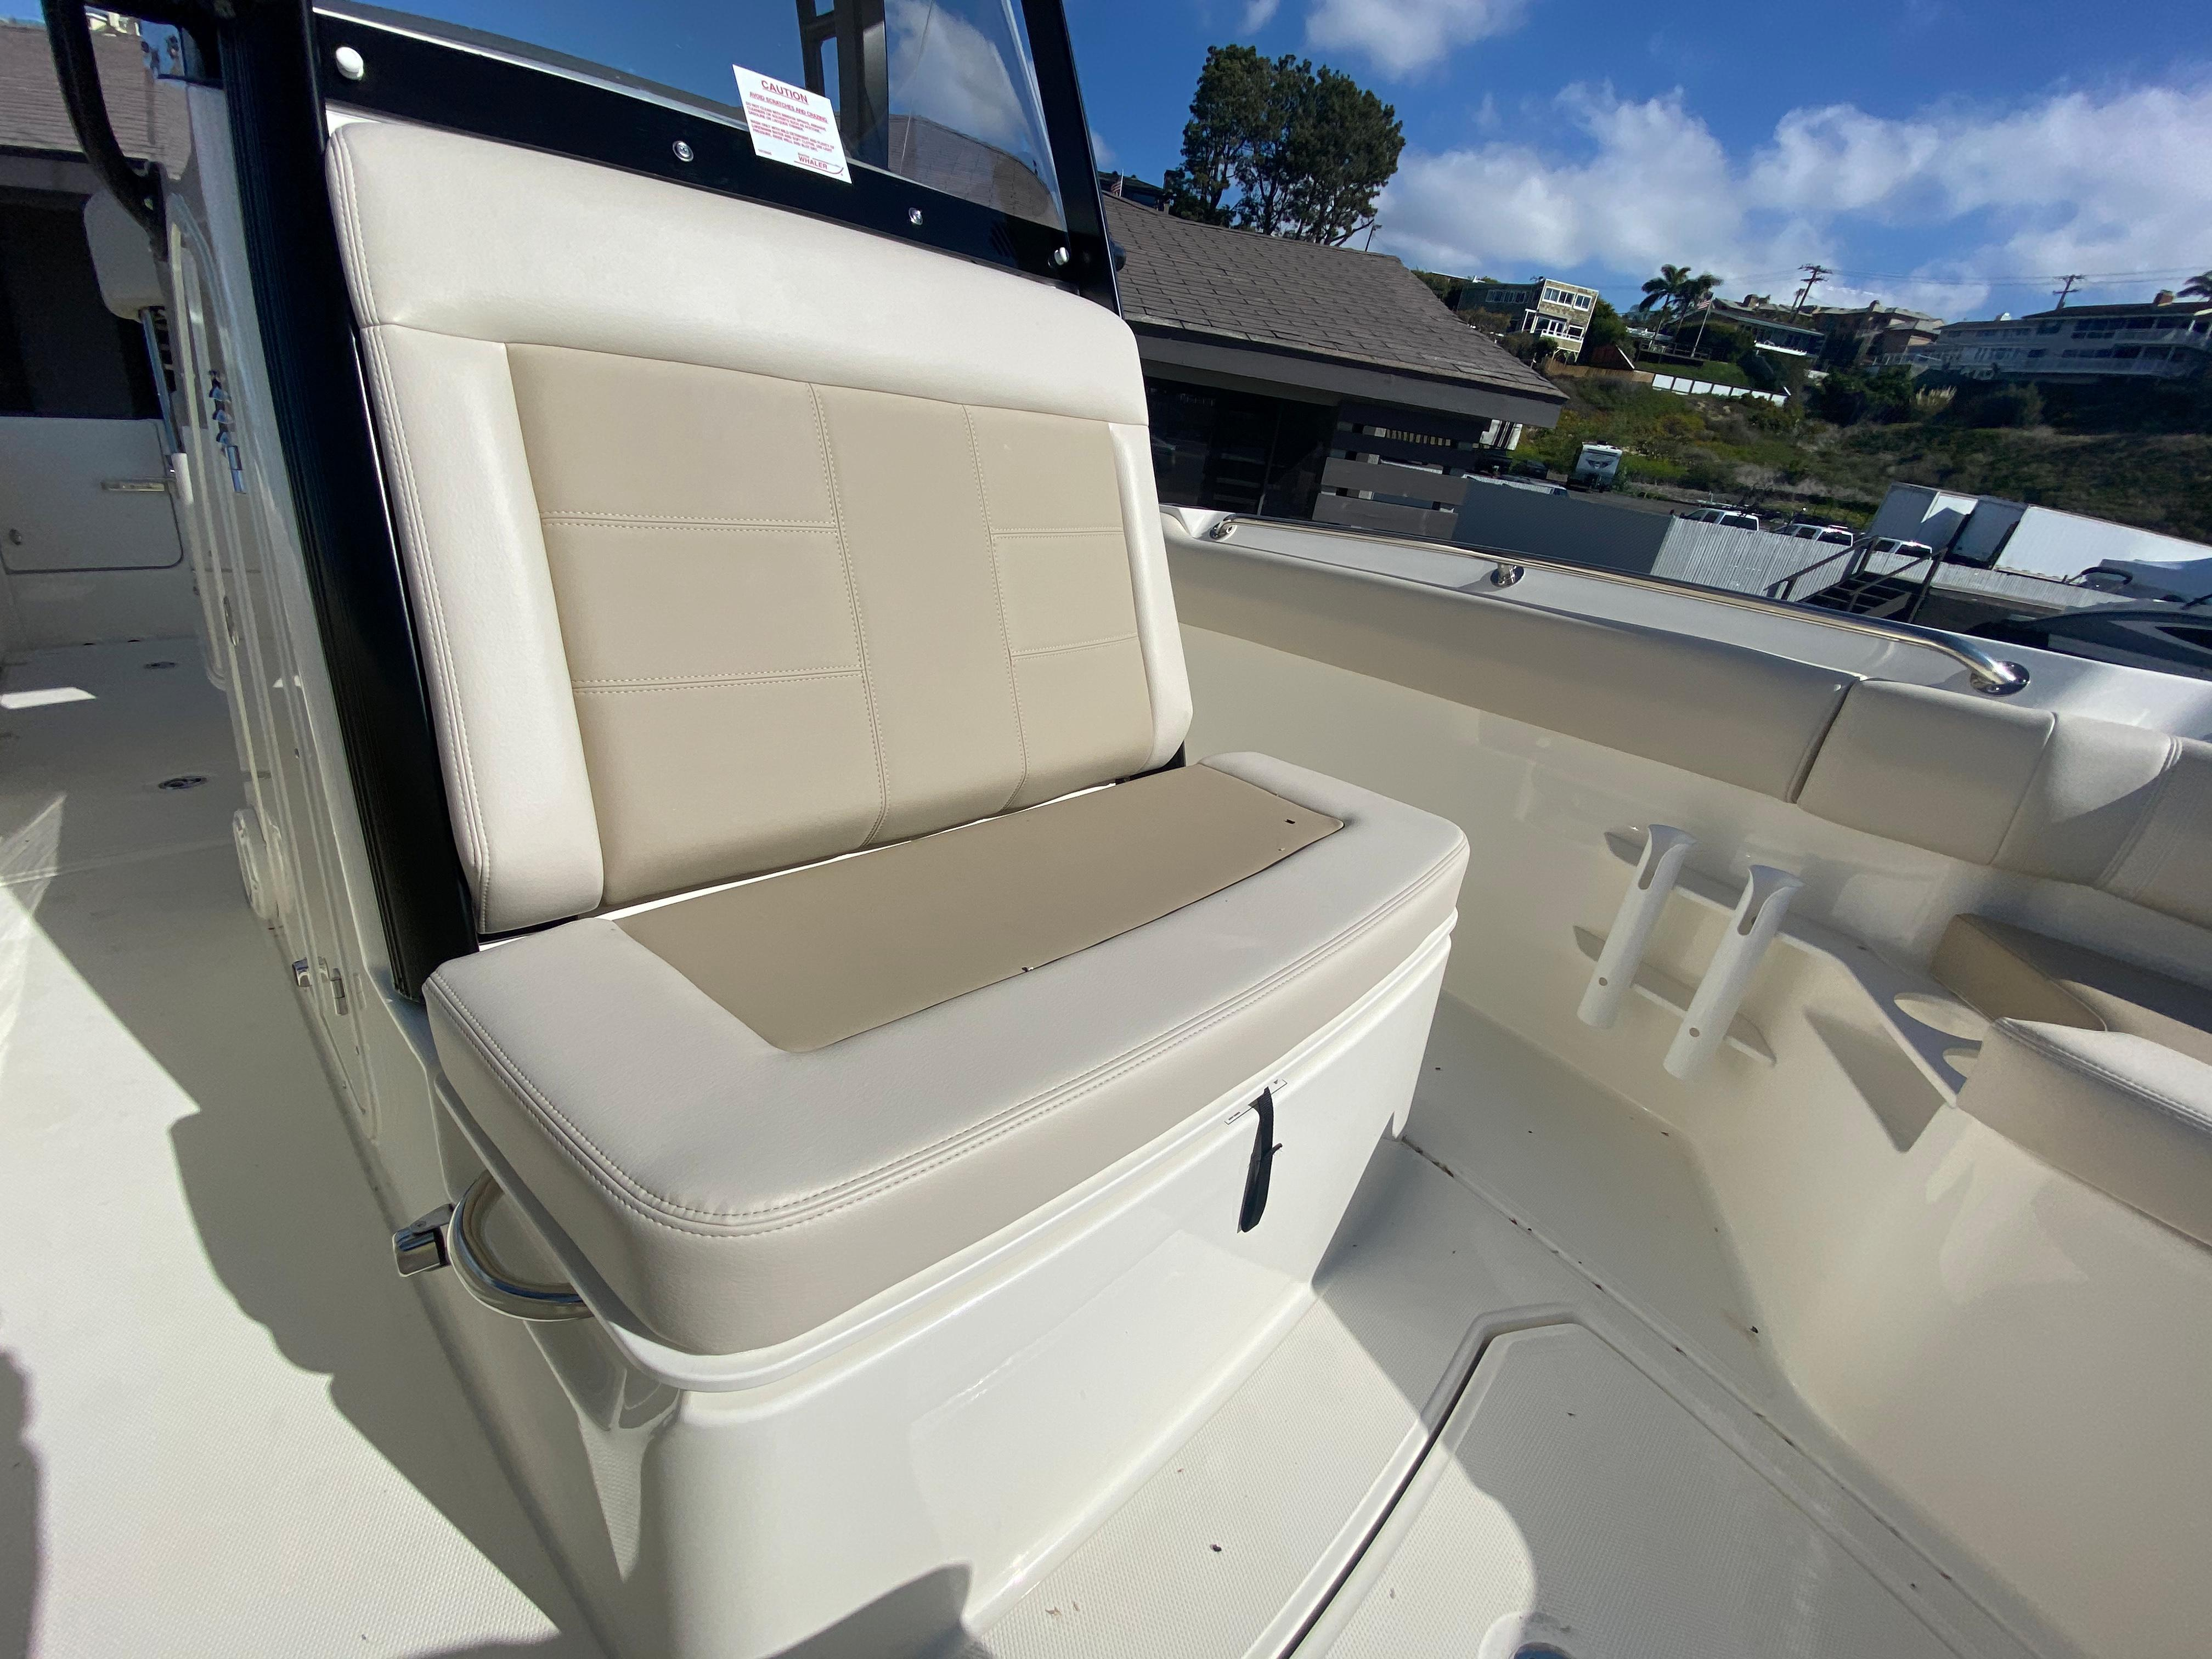 2021 Boston Whaler 230 Outrage #BW1448L inventory image at Sun Country Inland in Irvine